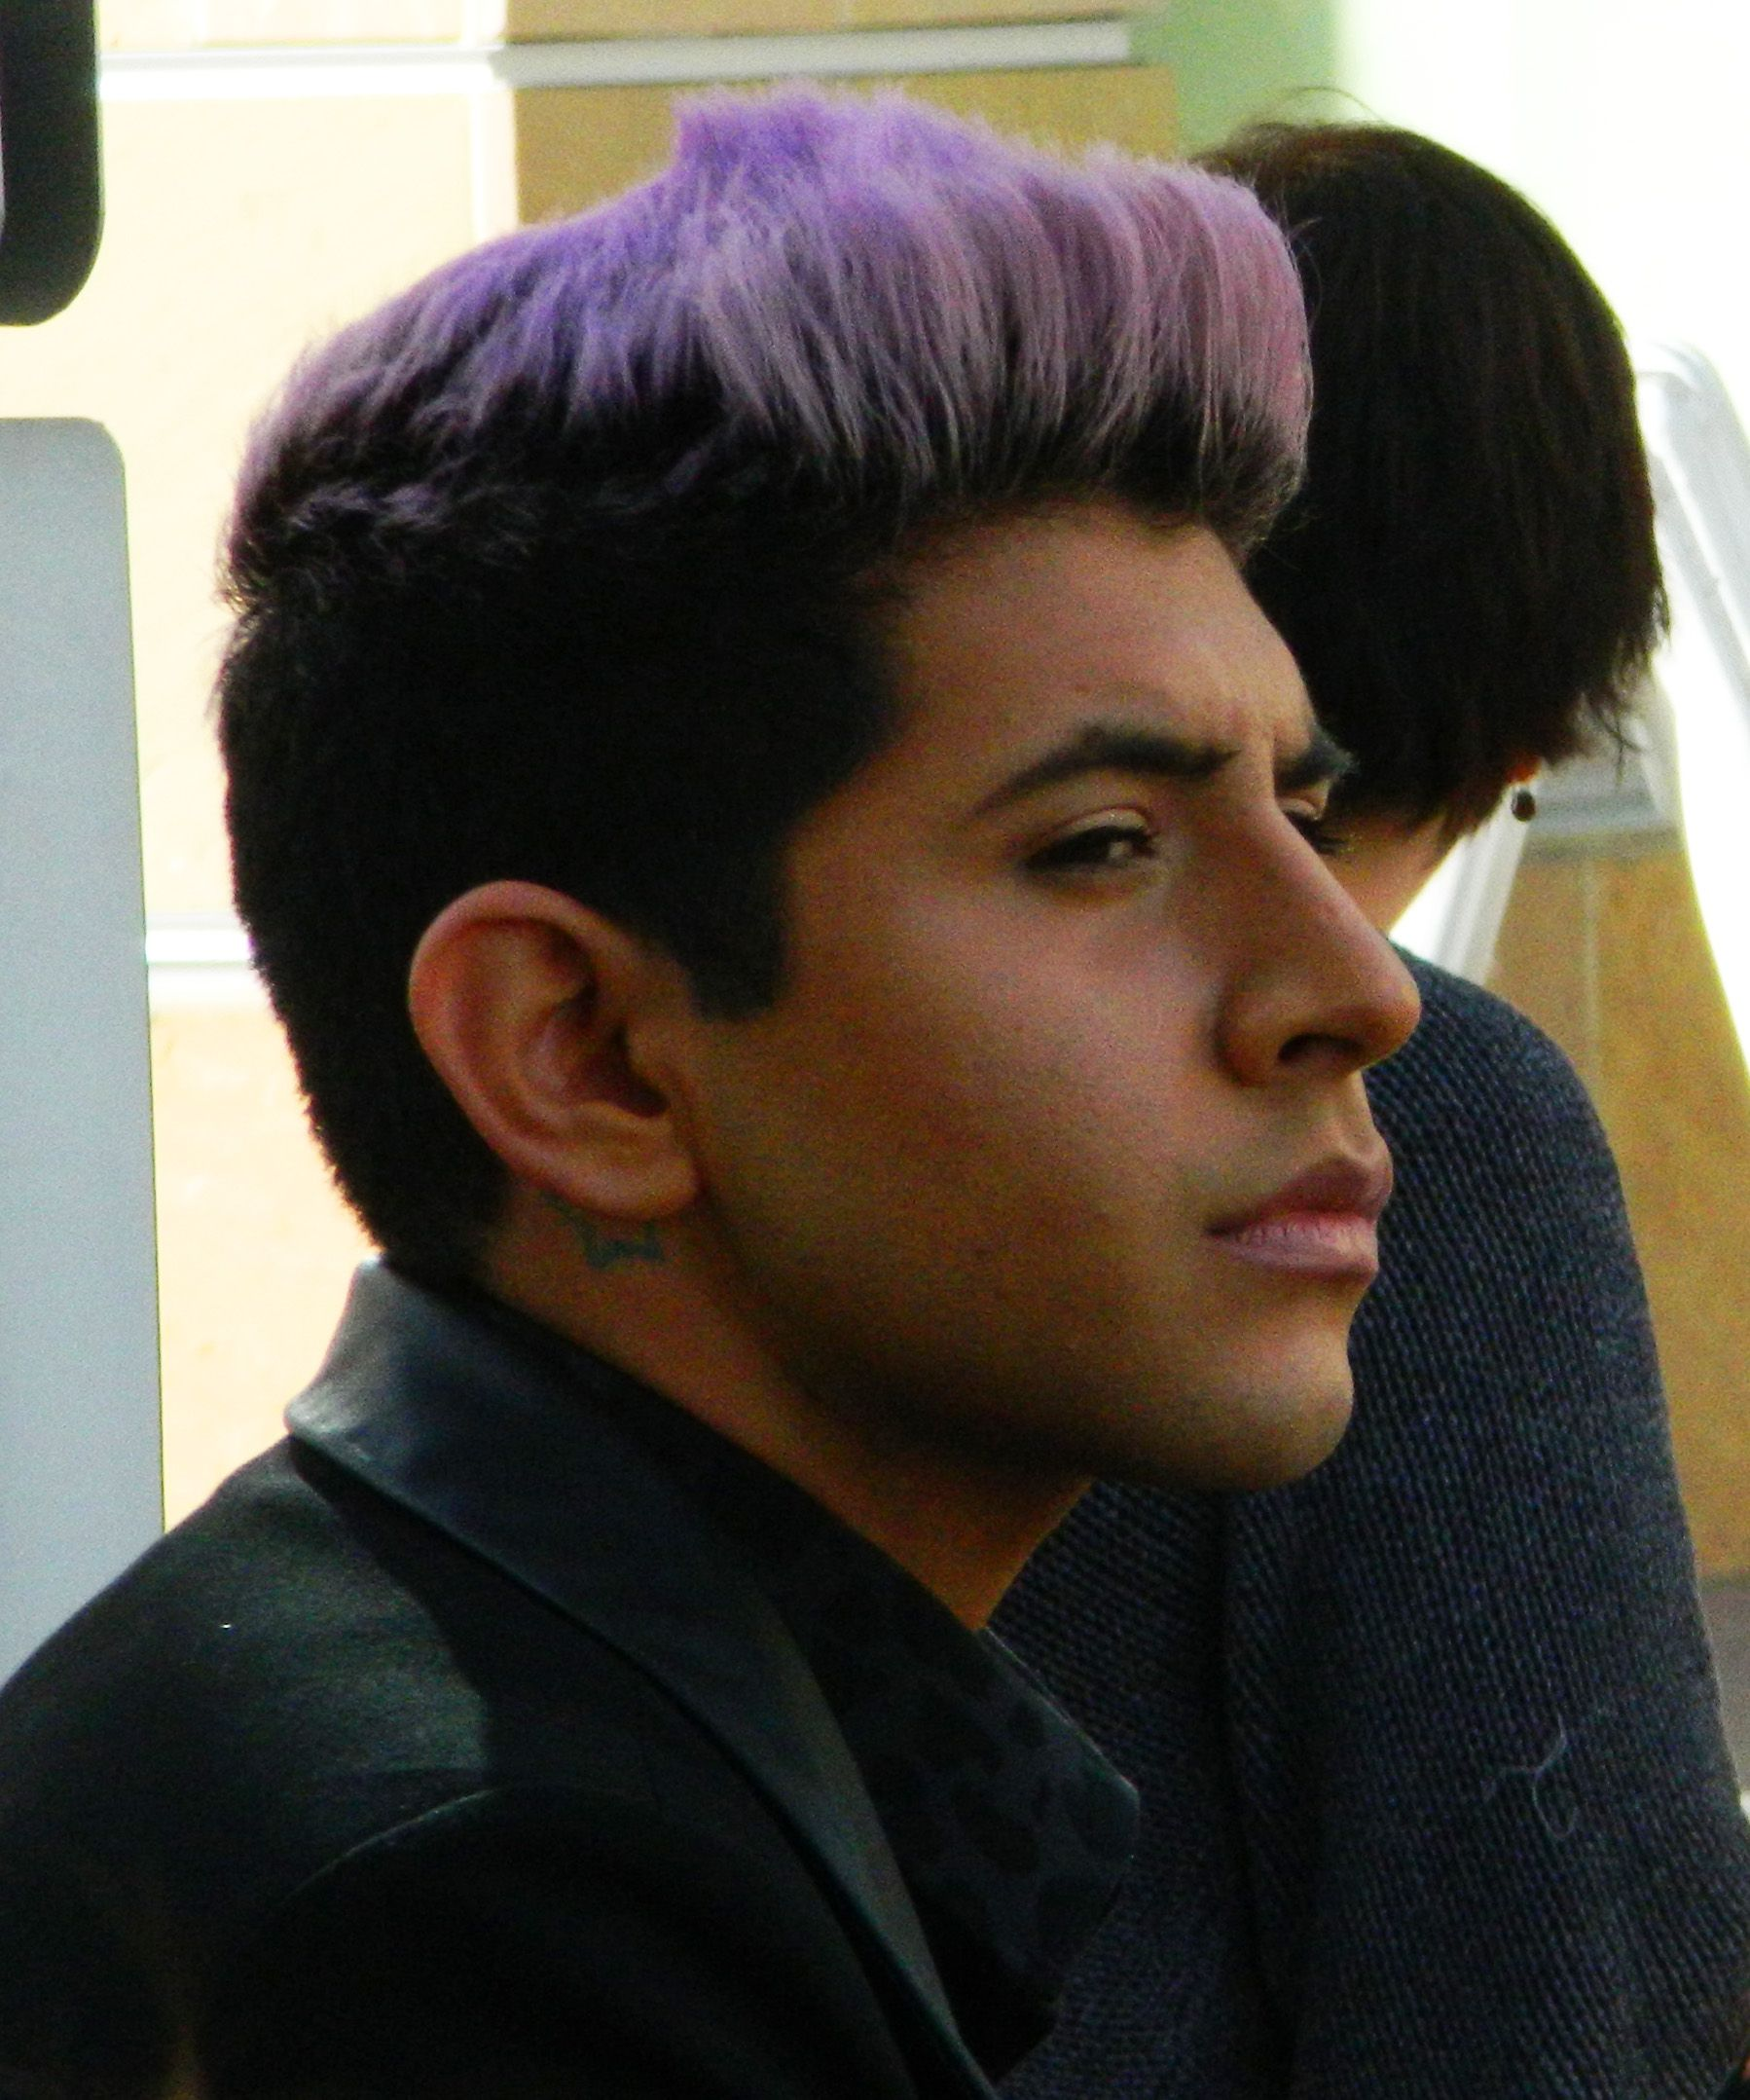 Dscn4332 Jpg 1798 2157 Purple Hair Mens Hairstyles Summer Hairstyles